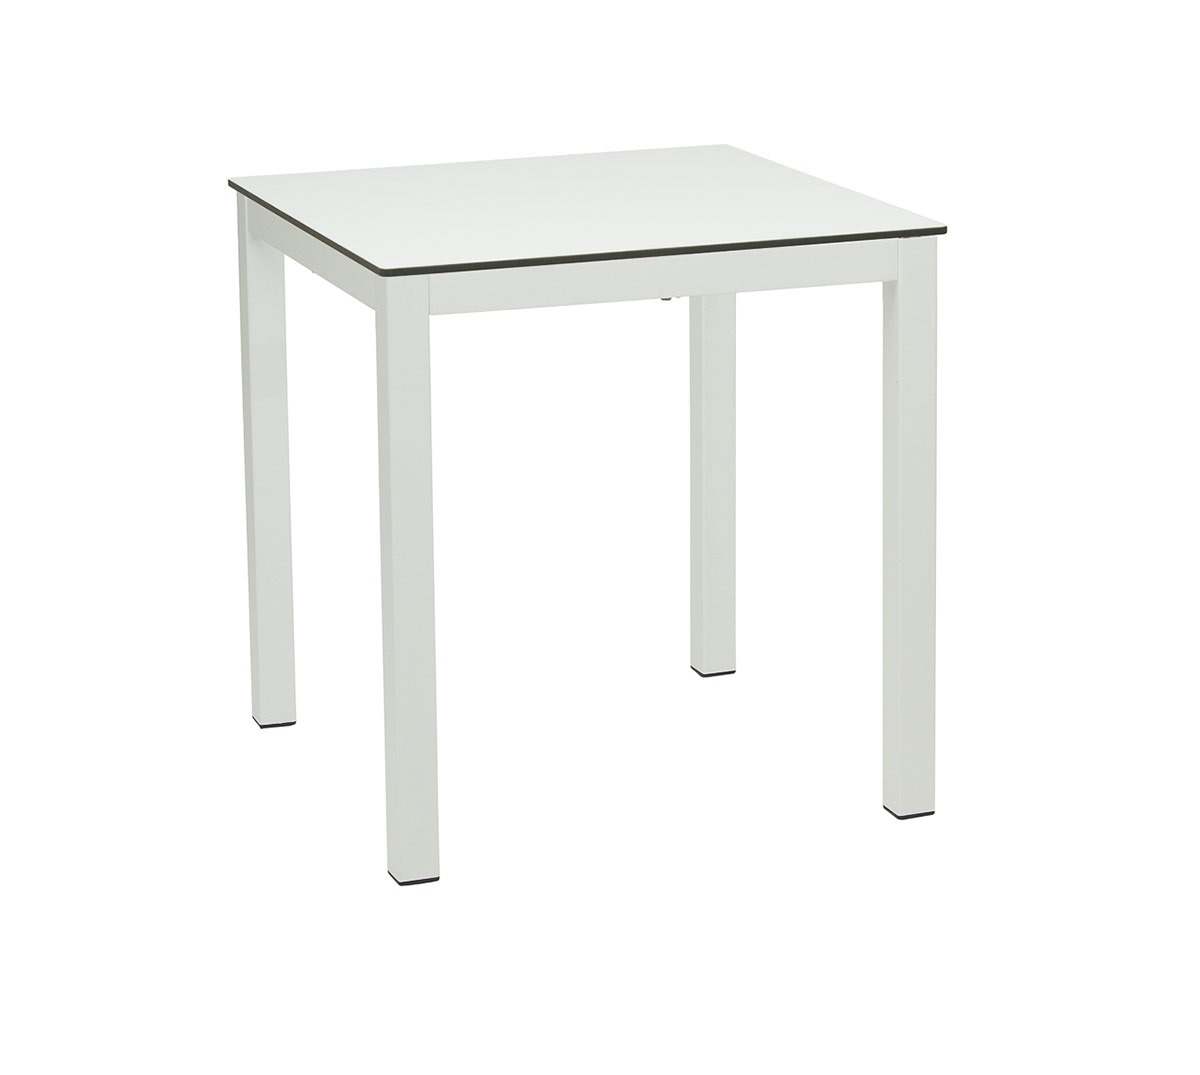 Mesa Glad a 75 aluminio color blanco texturado tablero compacto blanco